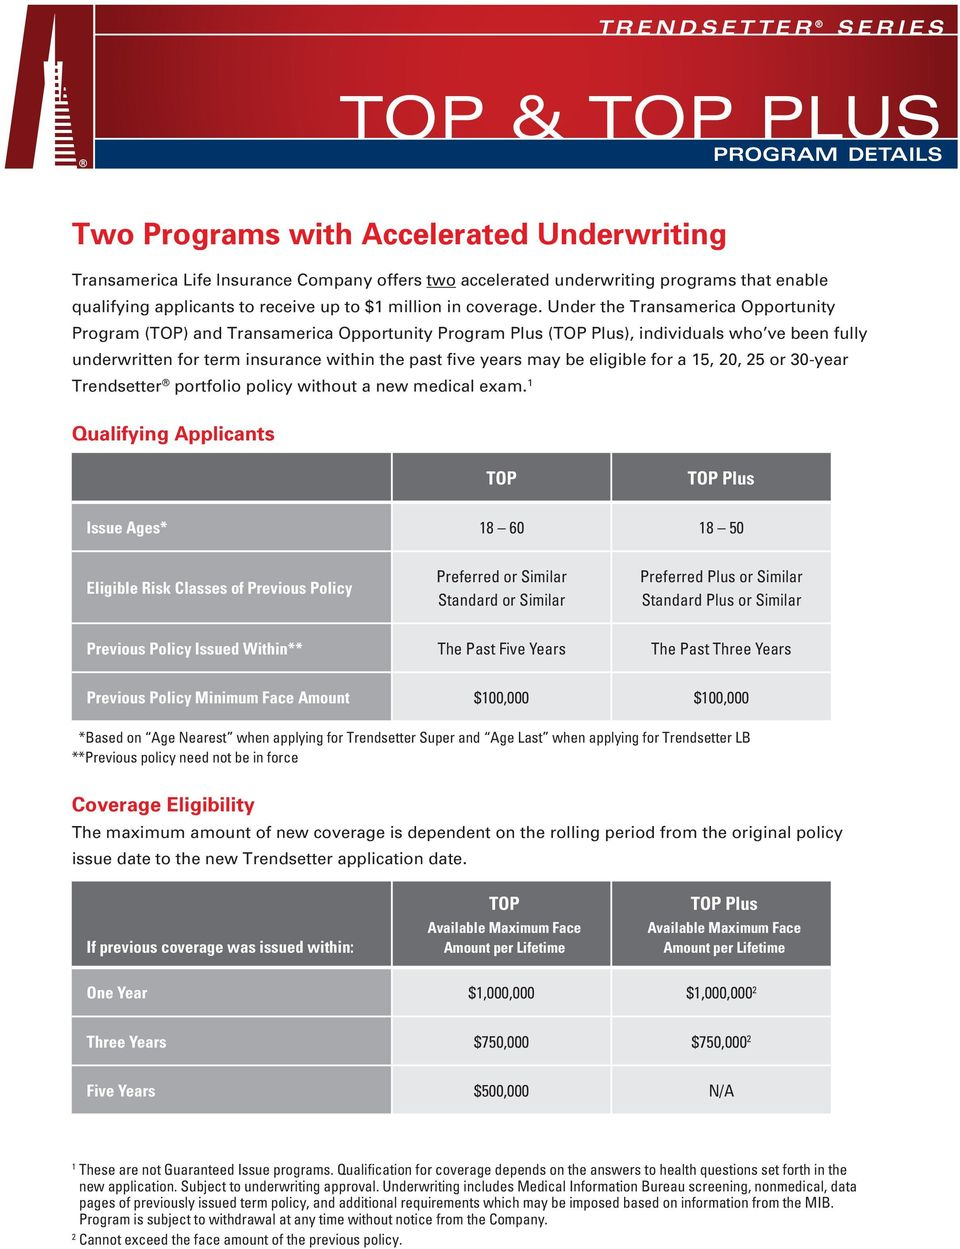 Under the Transamerica Opportunity Program (TOP) and Transamerica Opportunity Program Plus (TOP Plus), individuals who ve been fully underwritten for term insurance within the past five years may be